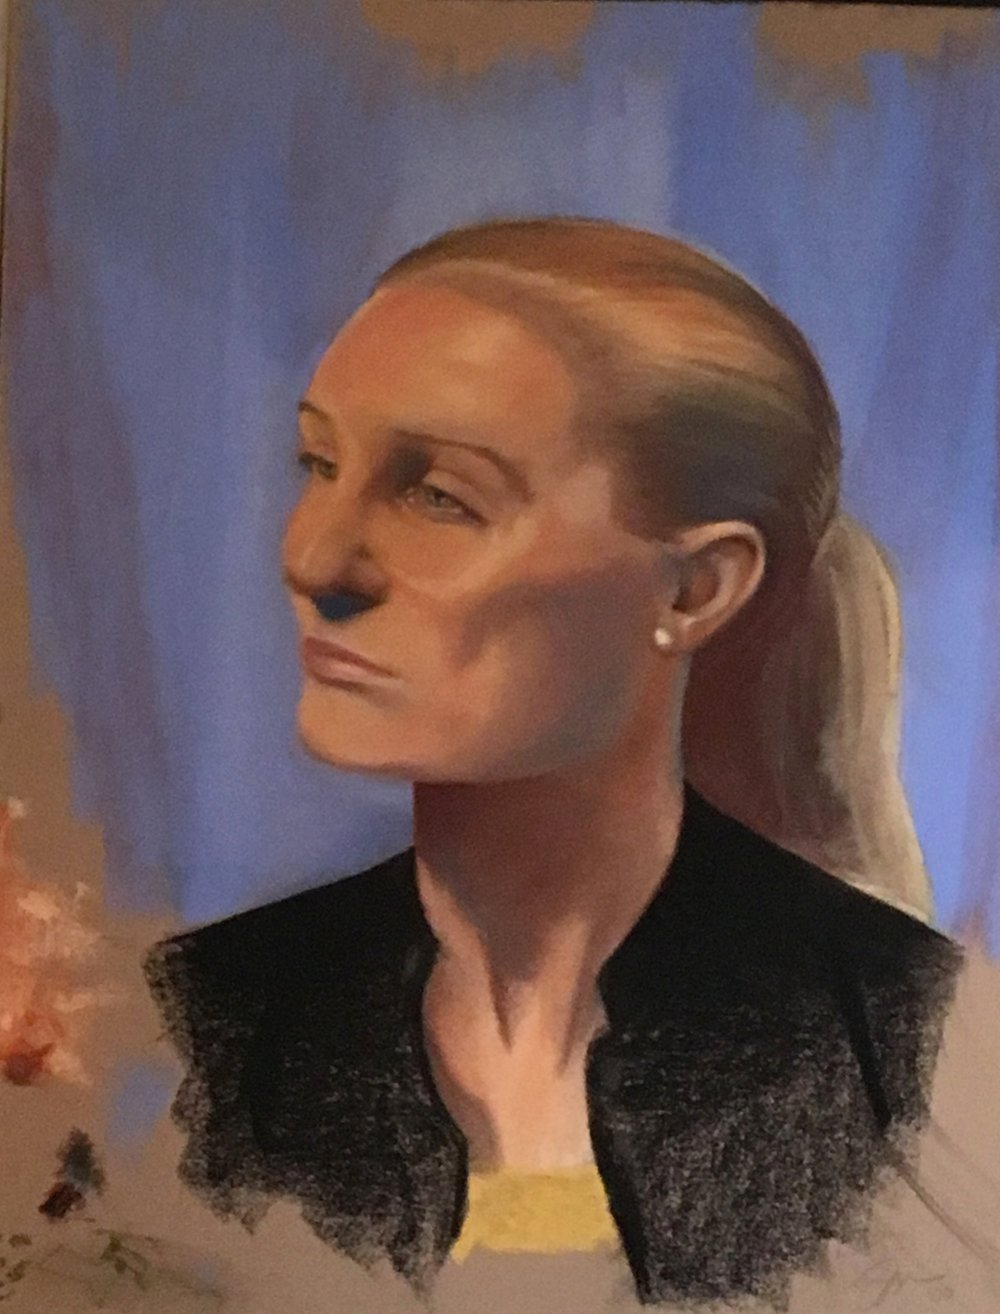 "Zamora, Gil. Blonde model in black. 2000. Chalk pastel on brown paper, 20"" x 25"". Private collection."